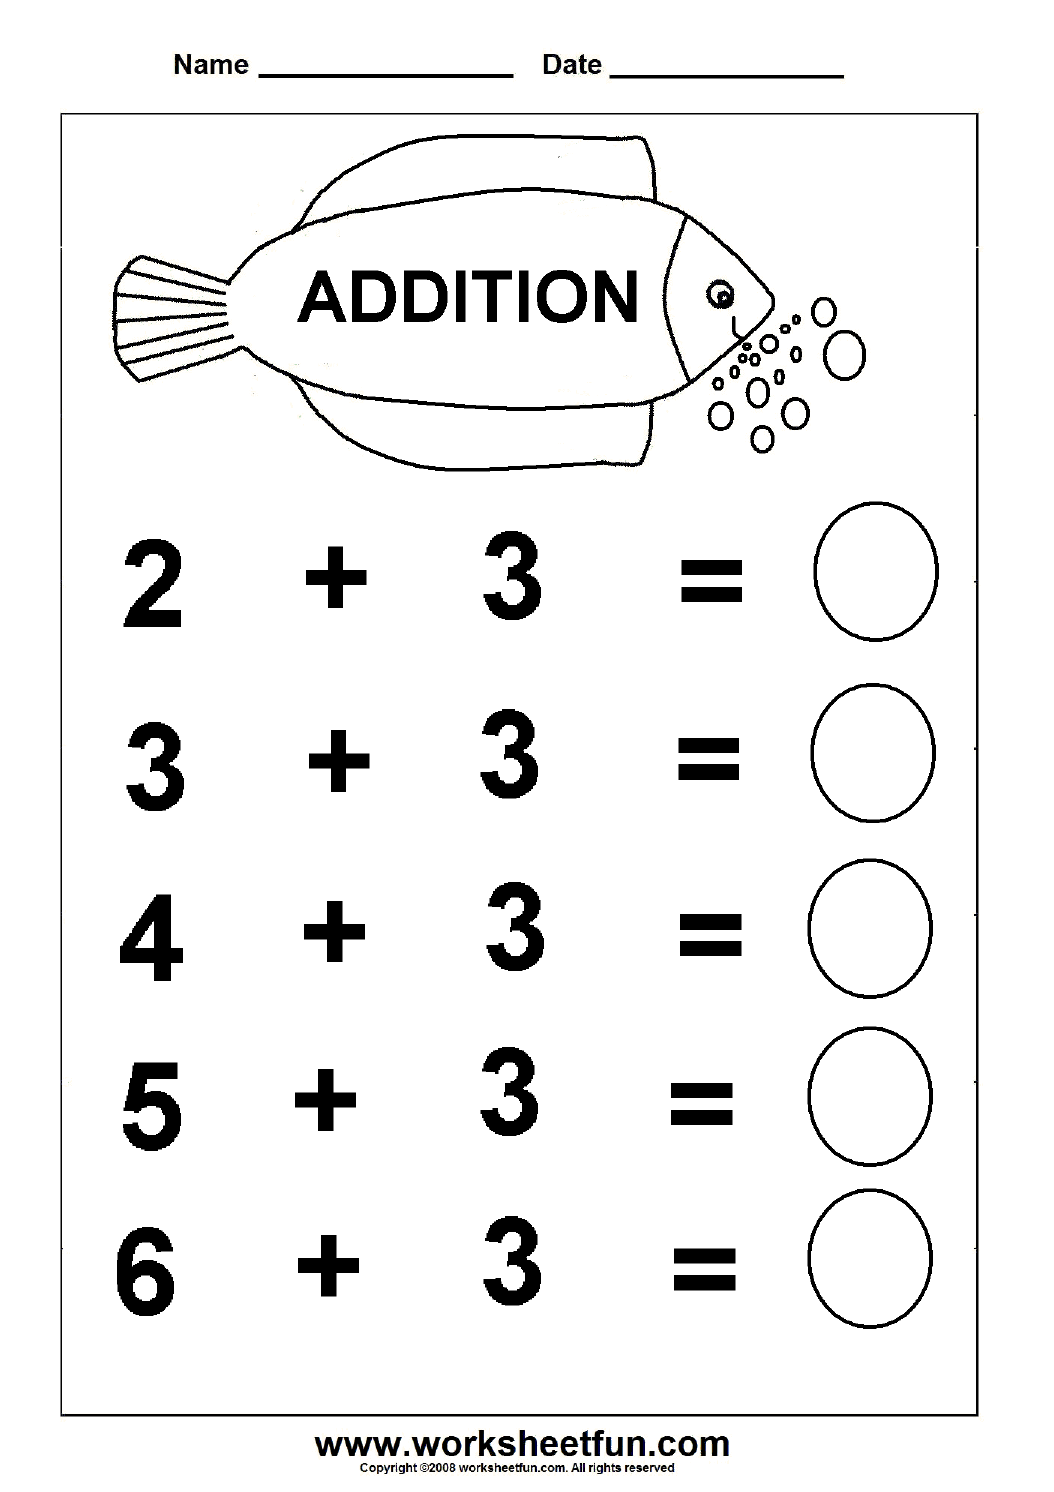 Printables Simple Addition Worksheets addition basic facts free printable worksheets beginner 6 kindergarten worksheets